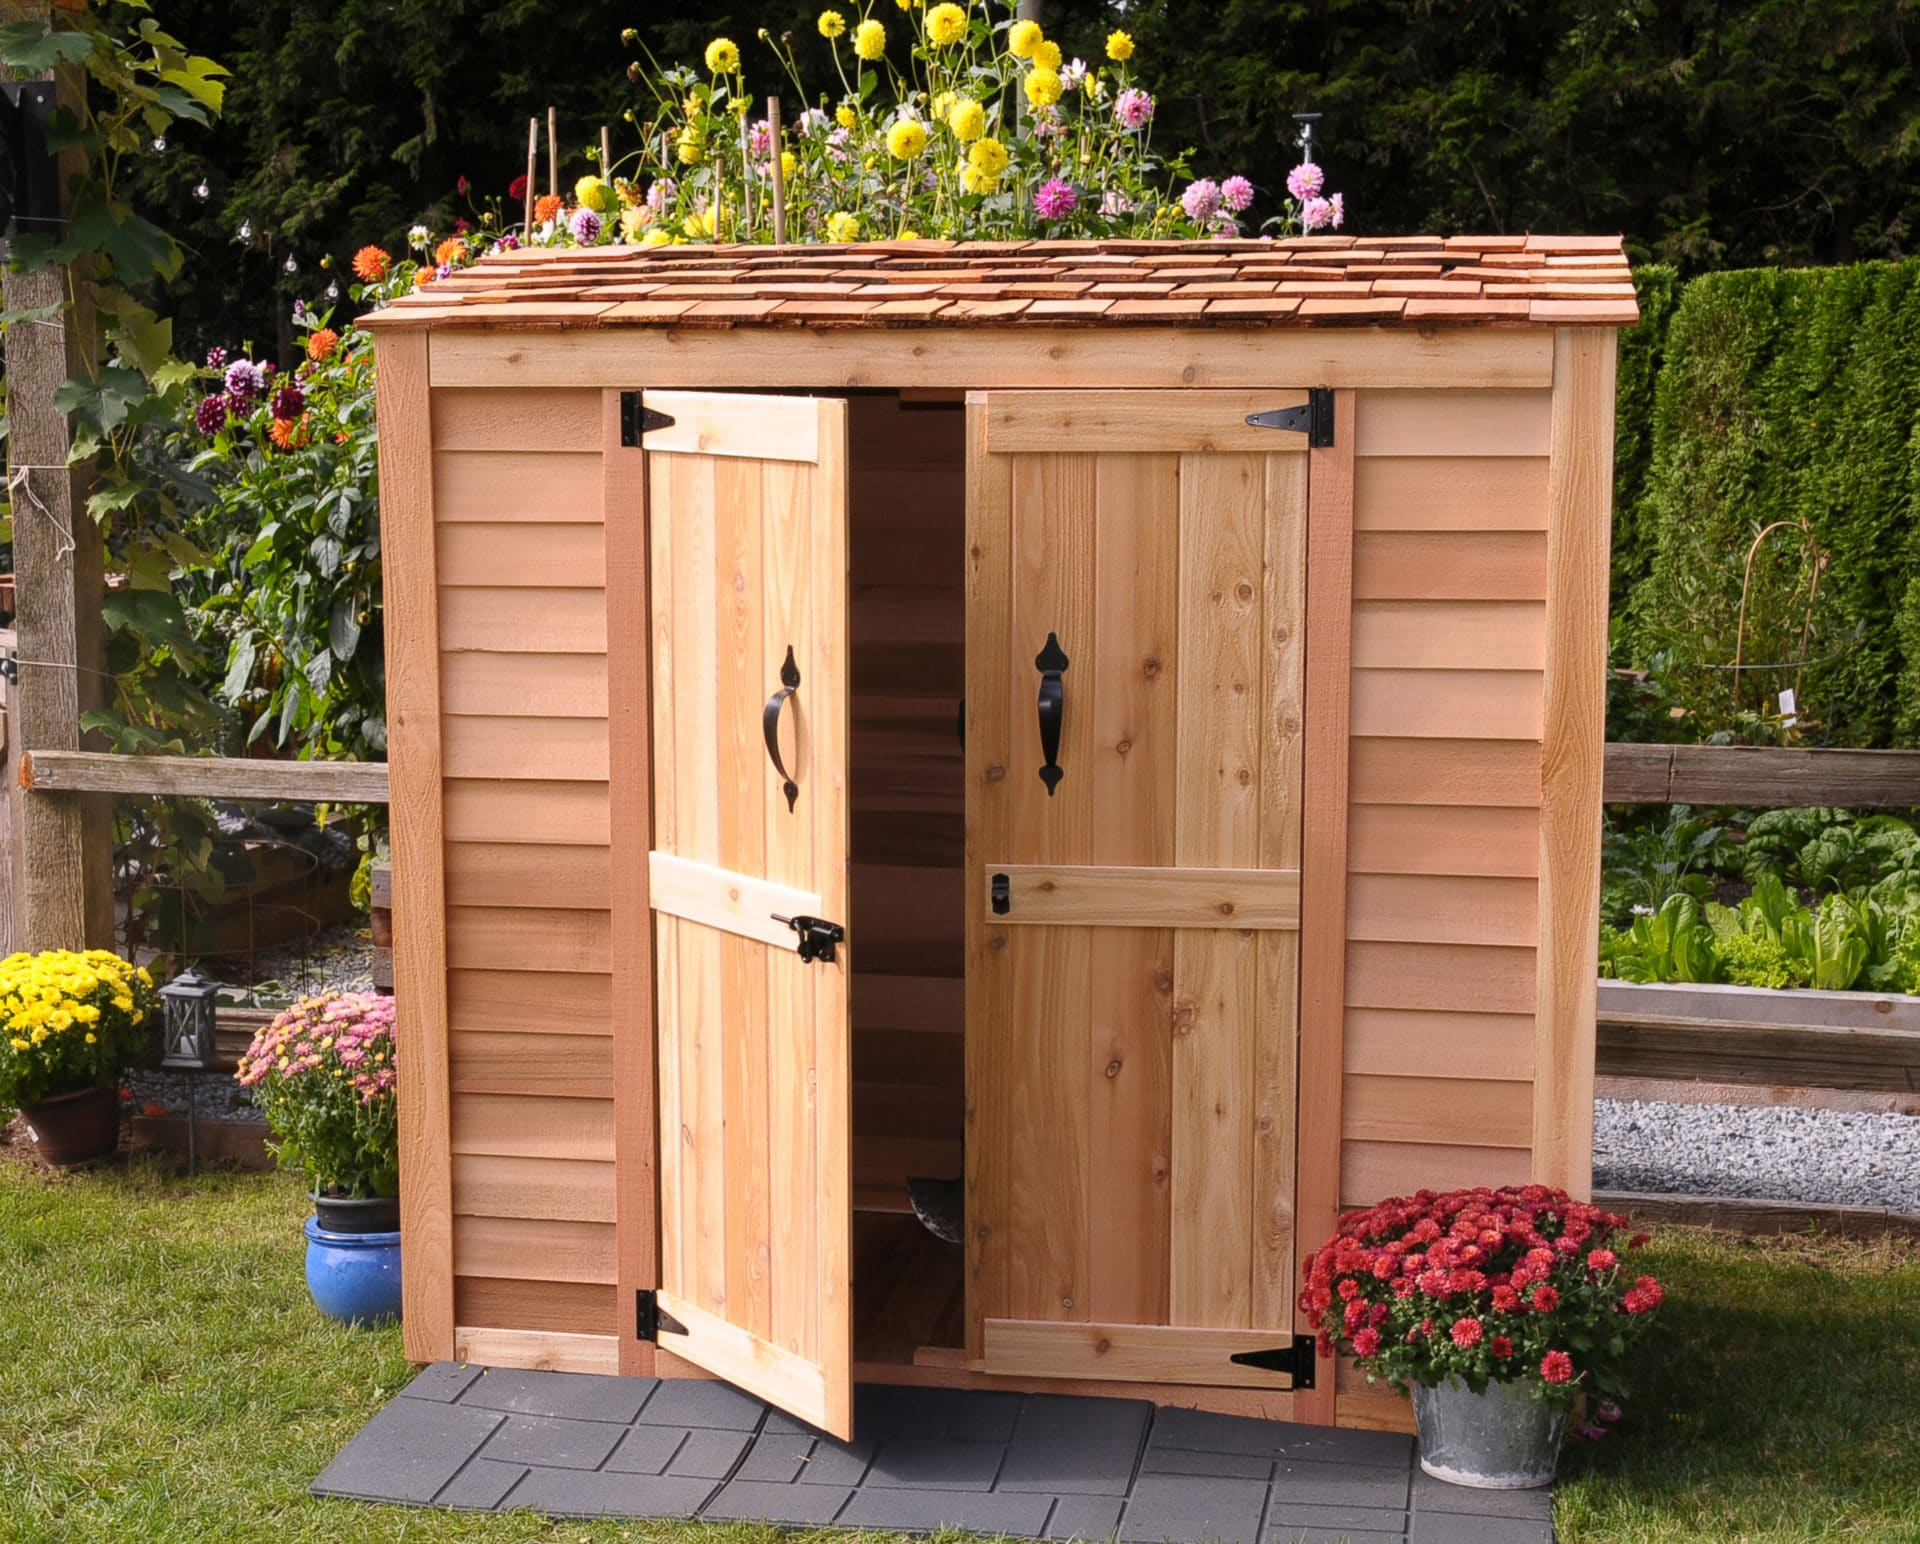 Now you too can buy the Best Garden Storage Boxes